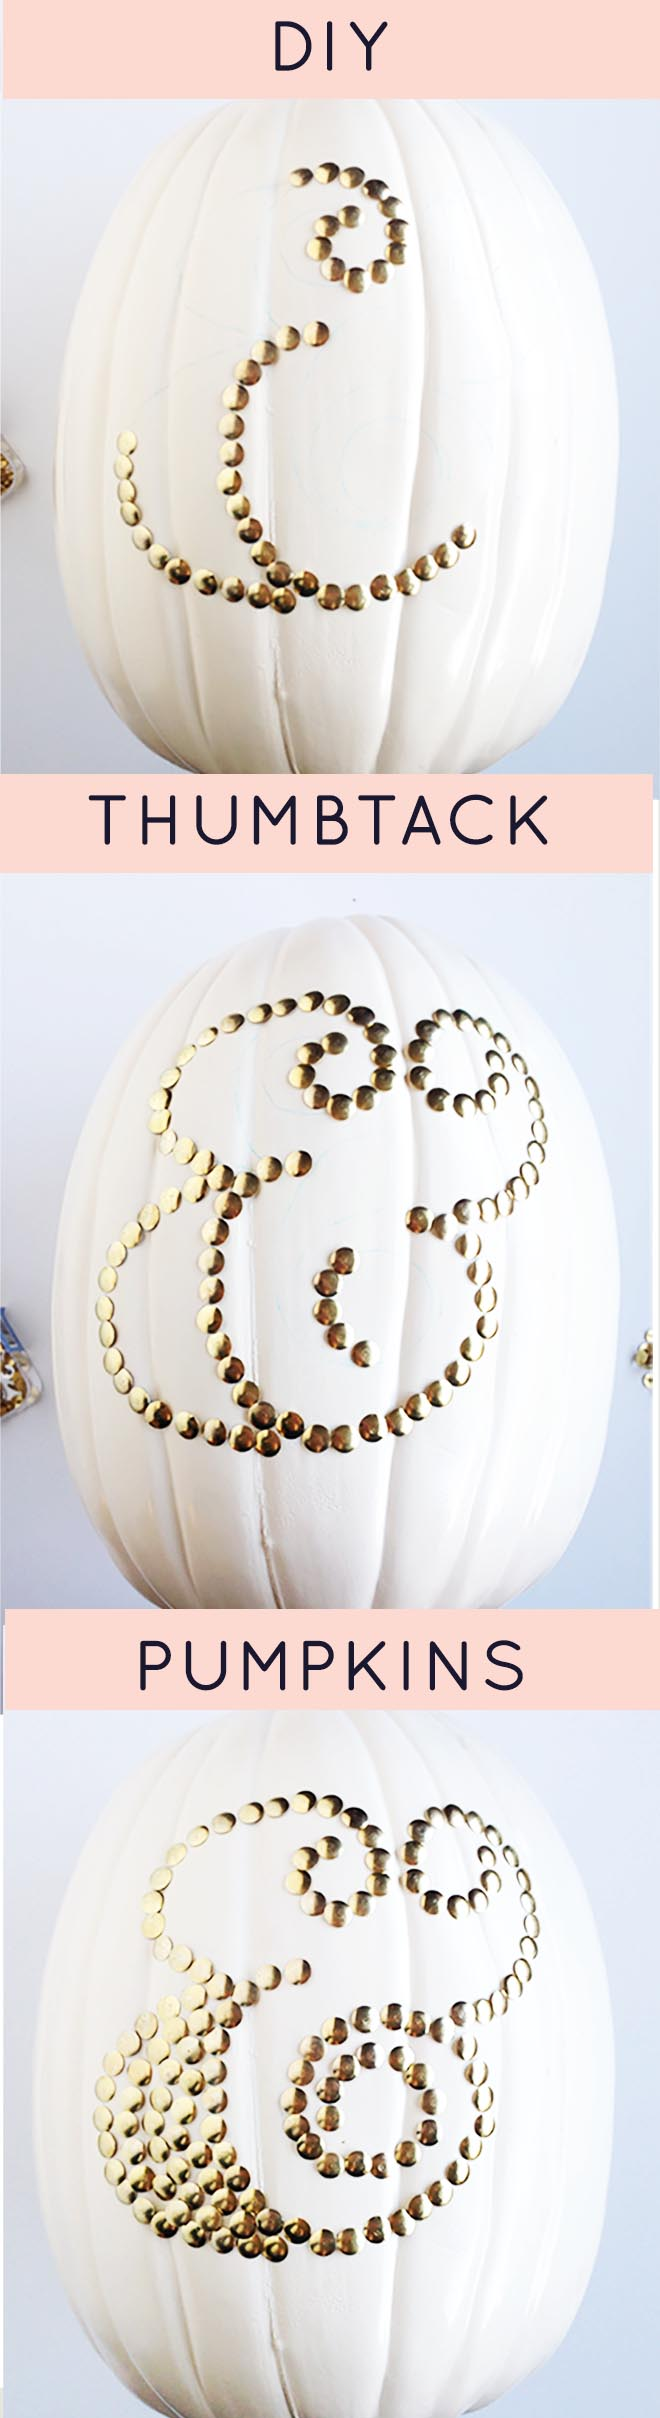 Thumbtack Pumpkins! Perfect for your Thanksgiving table.